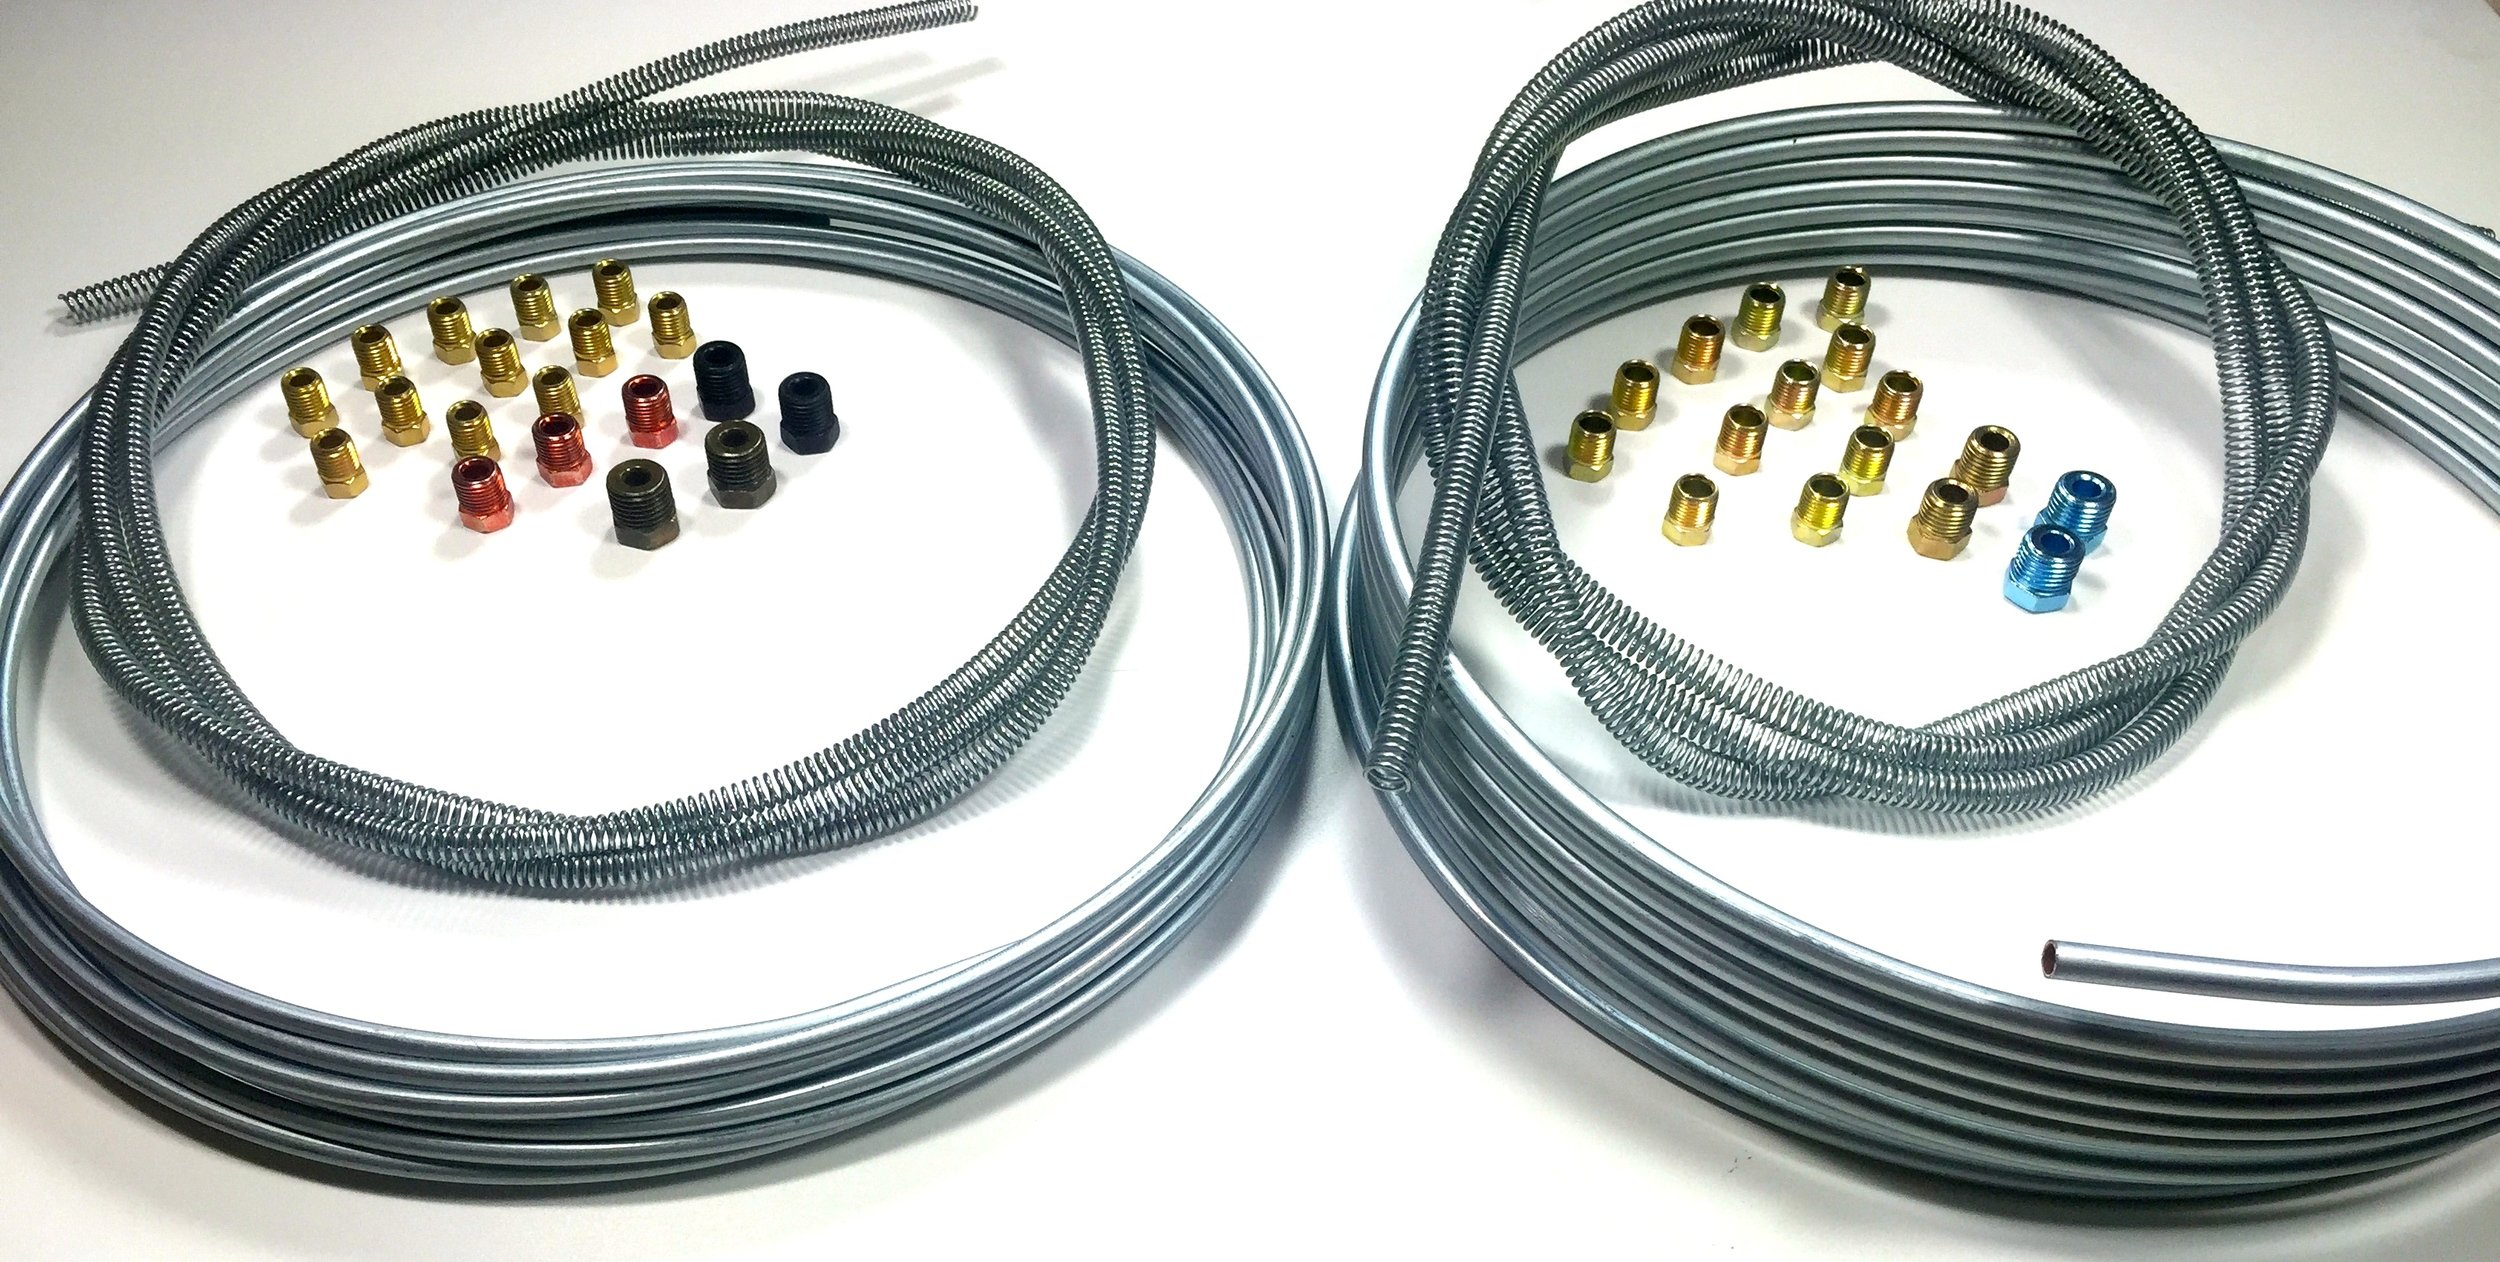 Complete 25' Rolls 3/16 & 1/4 inch Brake Line Kit WITH Fittings and 8' of Spring Guard